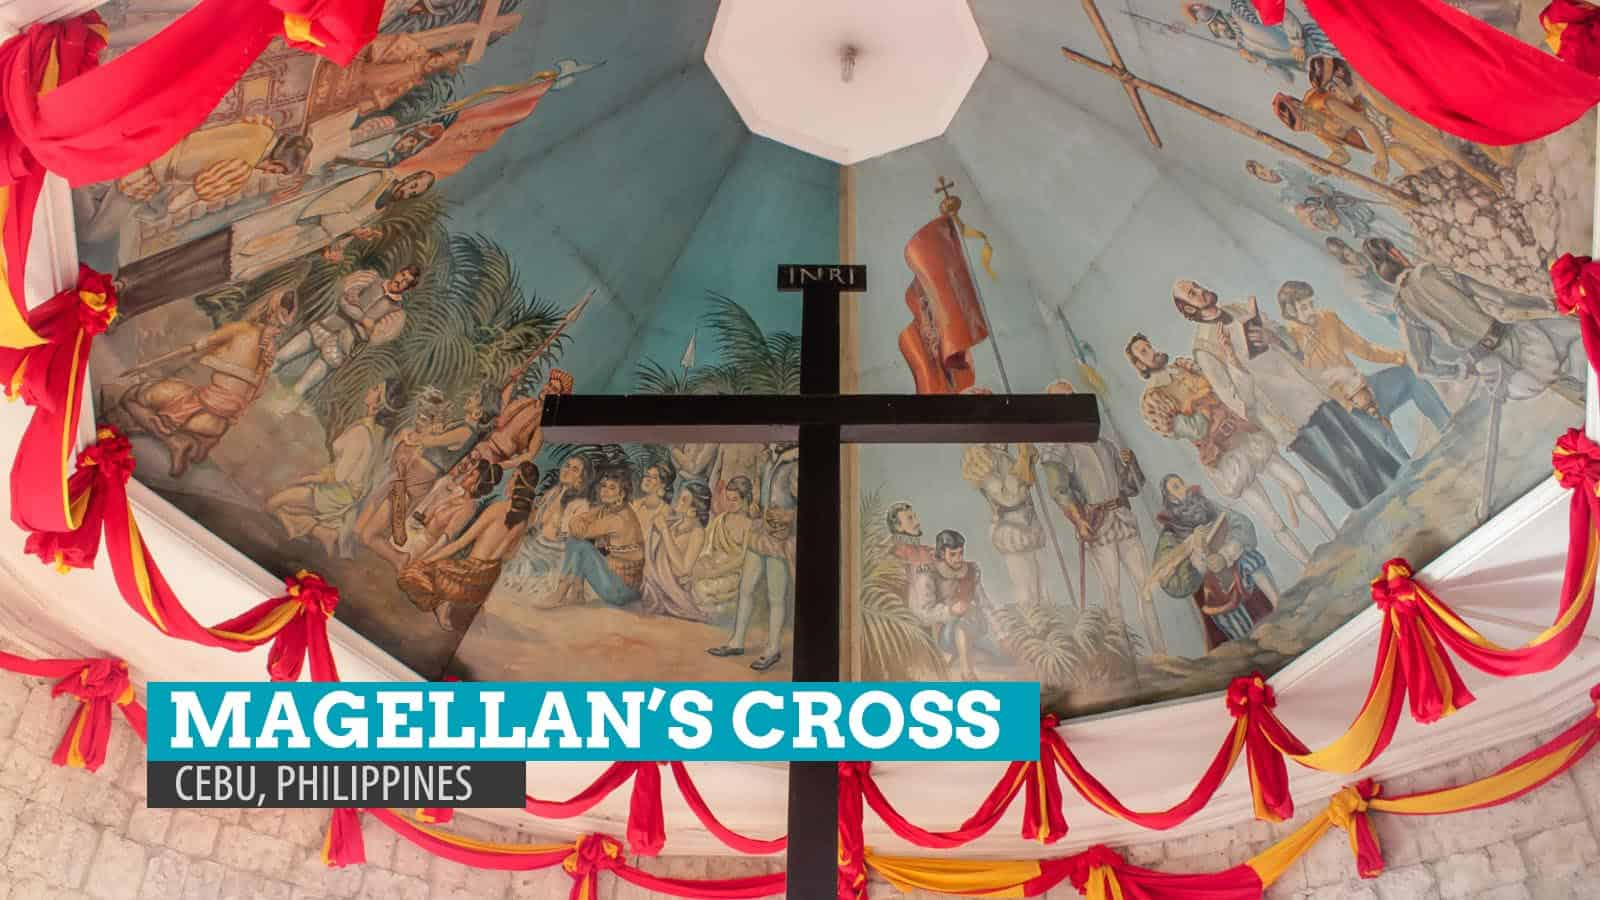 Magellan's Cross in Cebu City, Philippines